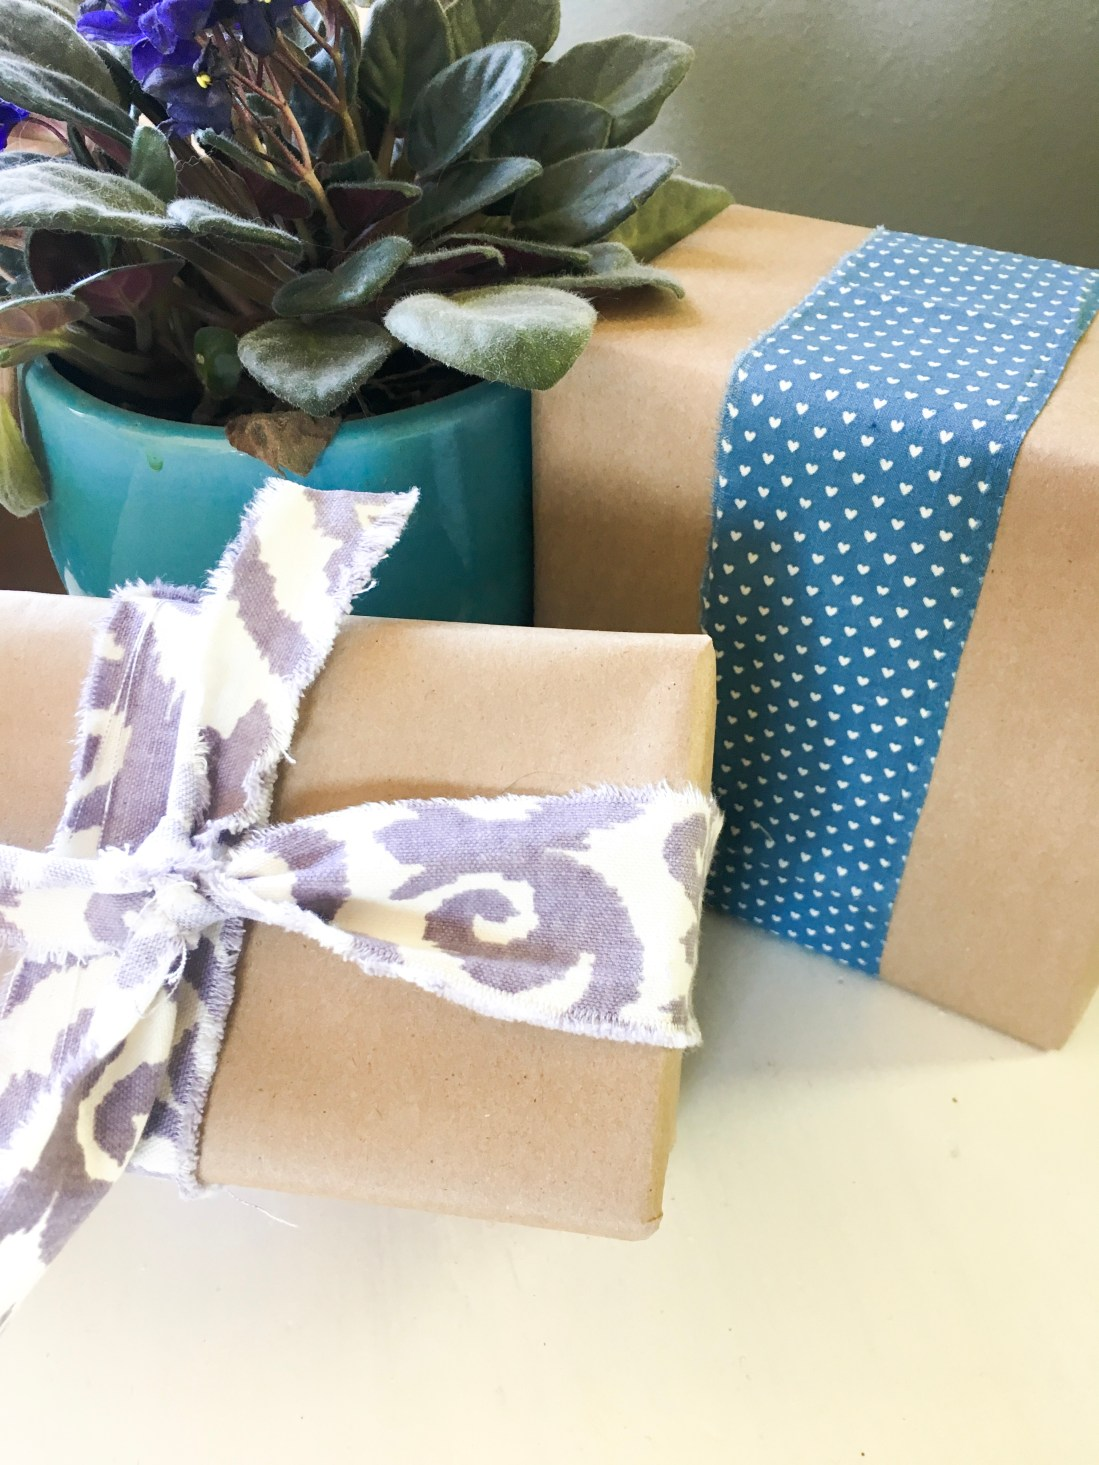 Two presents wrapped in brown kraft paper and tied with fabric ribbon, one with a bow and the other not